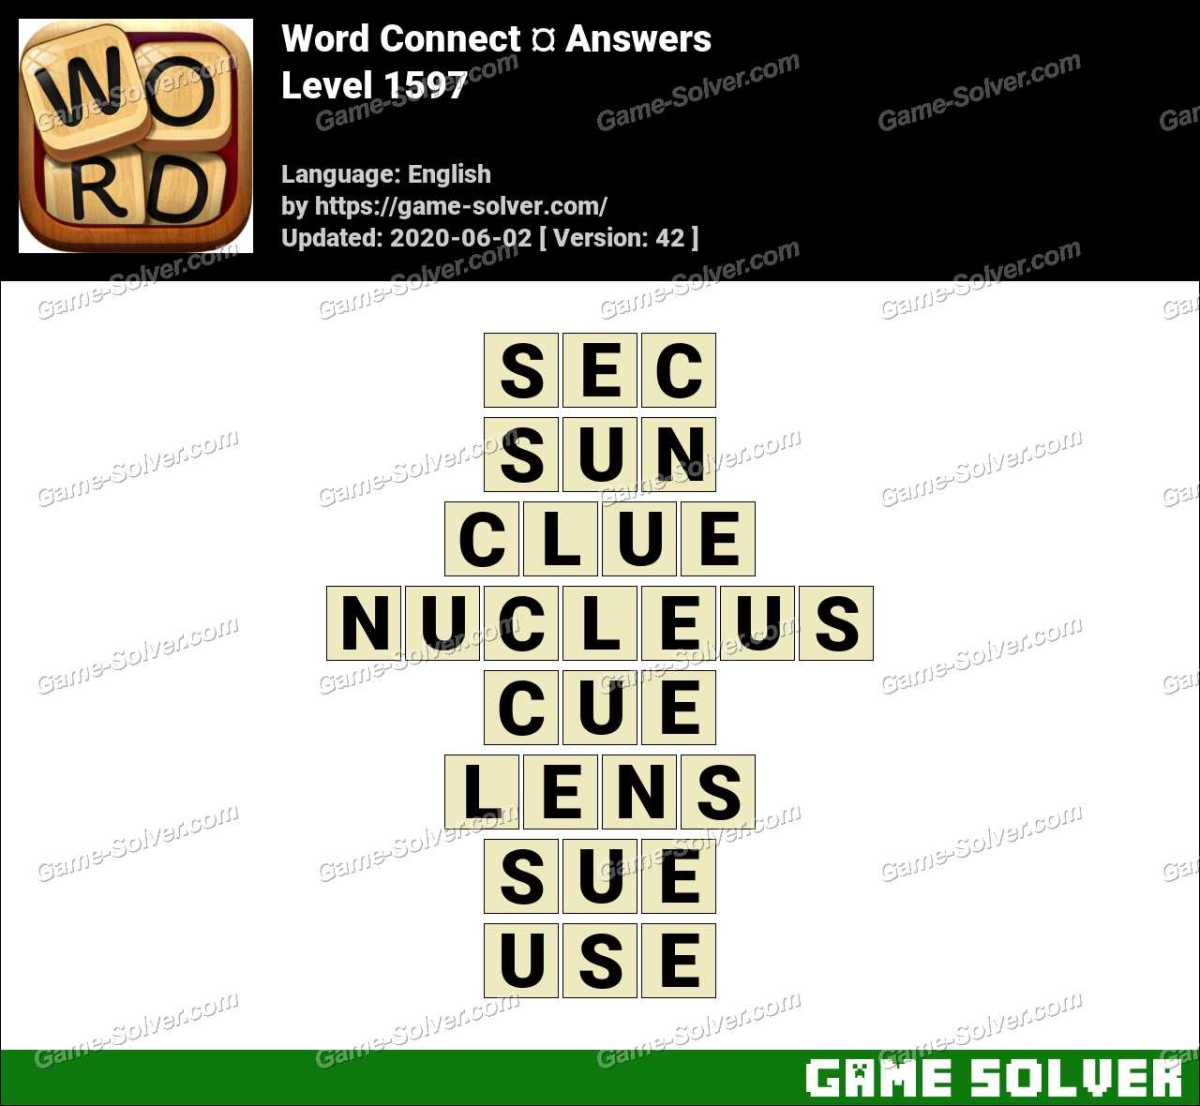 Word Connect Level 1597 Answers